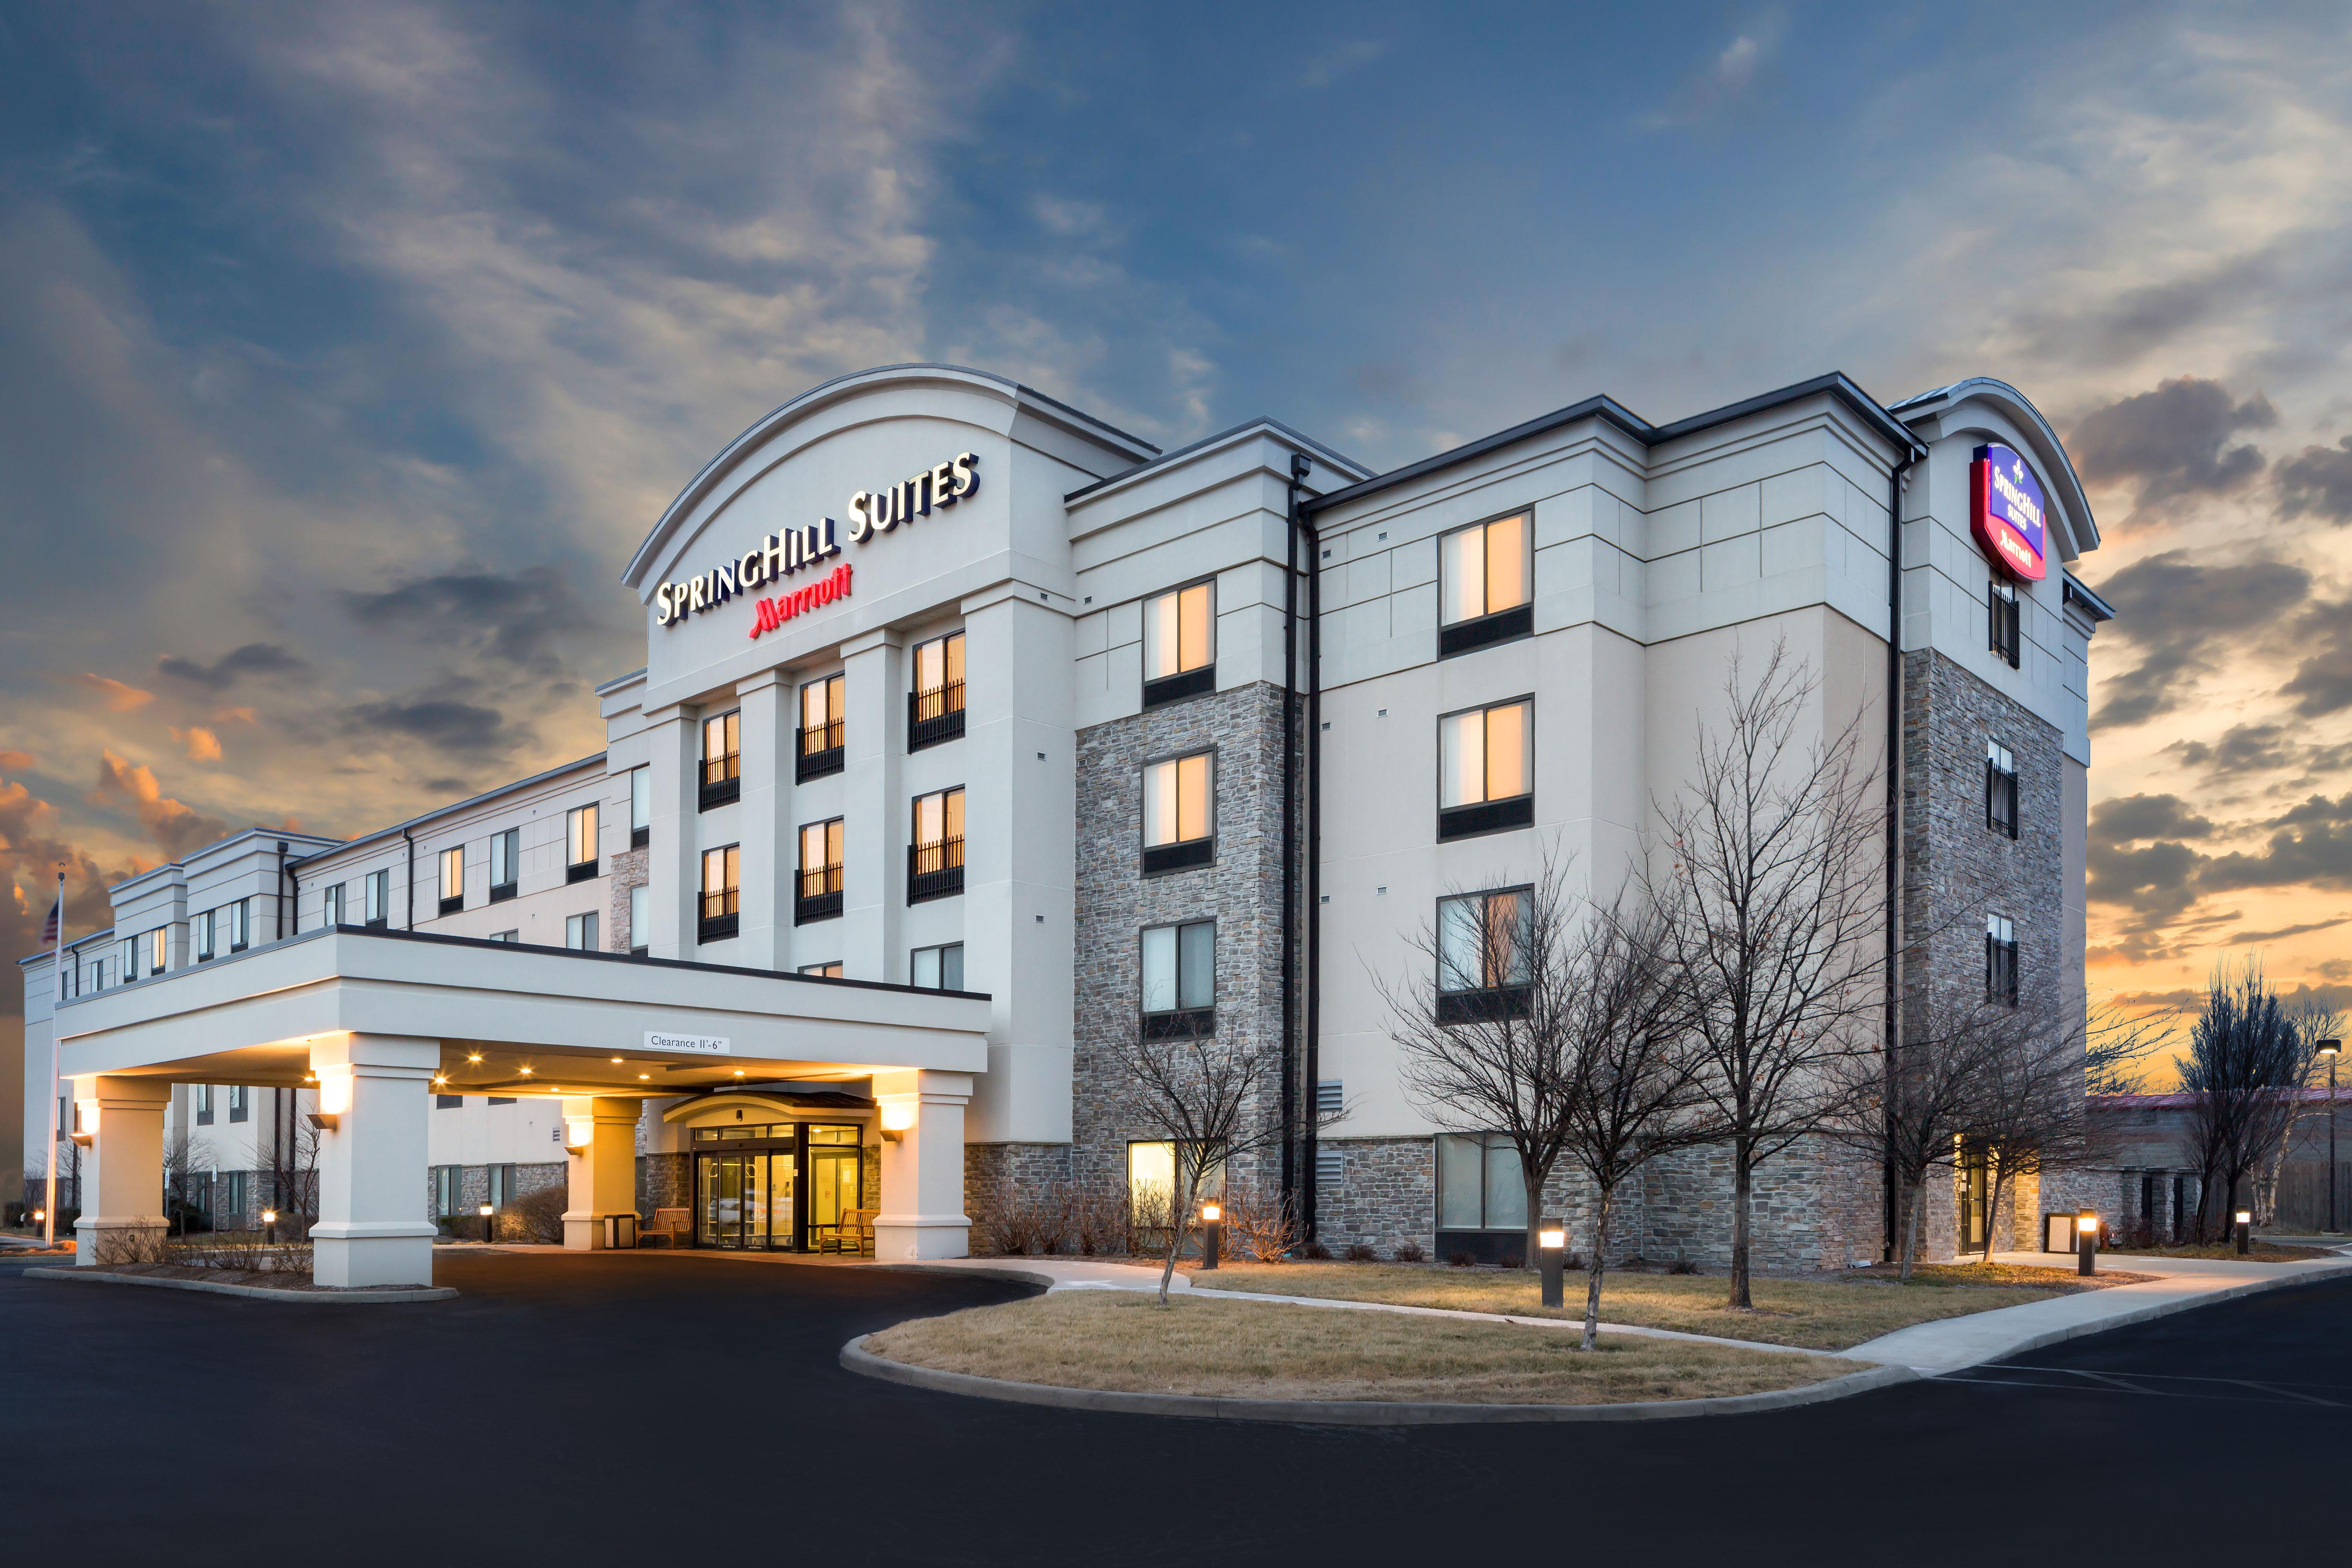 SpringHill Suites by Marriott Indianapolis Fishers image 0